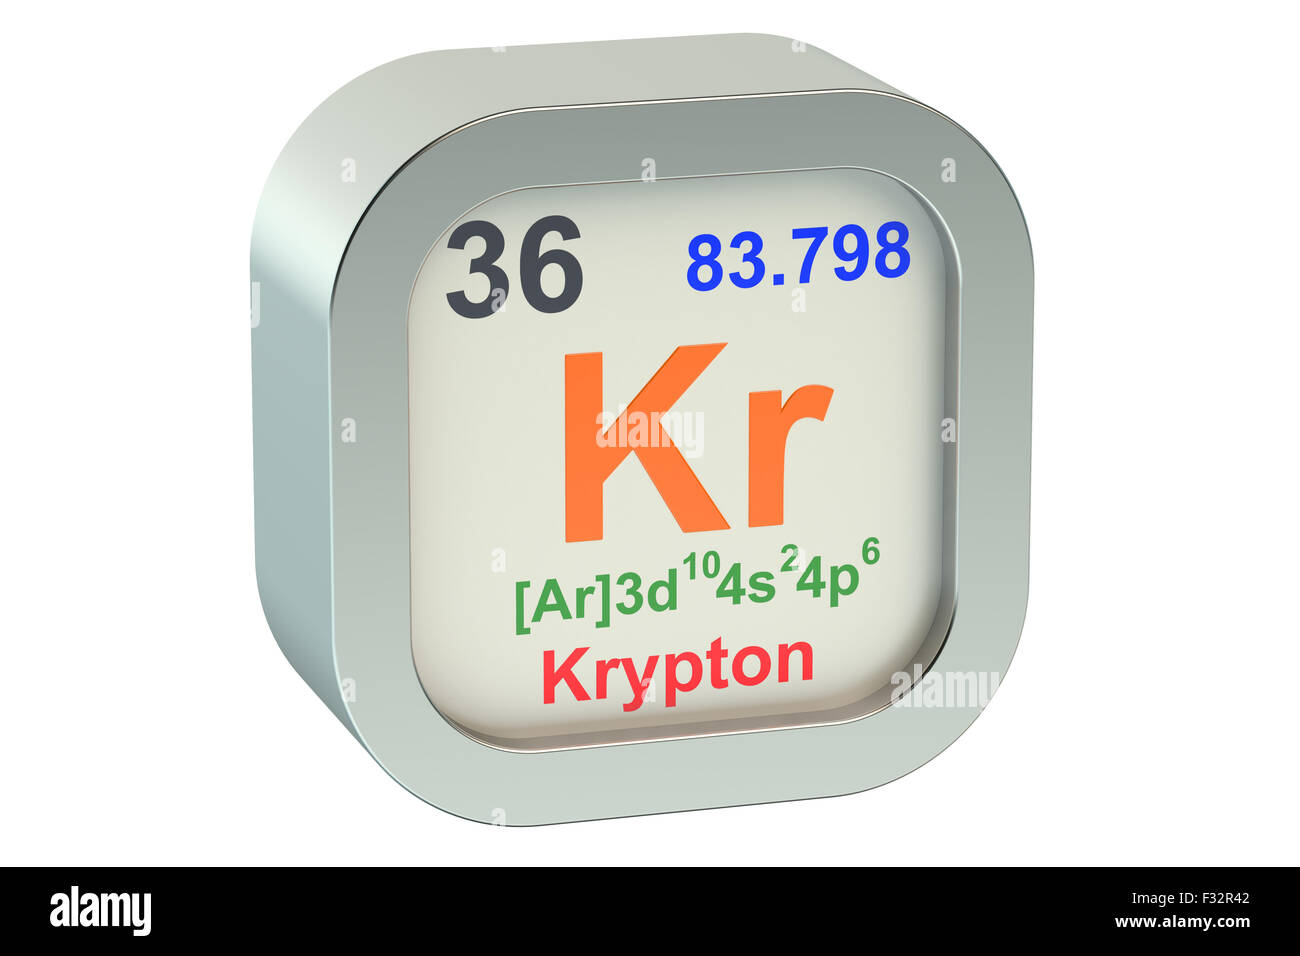 Krypton element symbol isolated on white background stock photo krypton element symbol isolated on white background buycottarizona